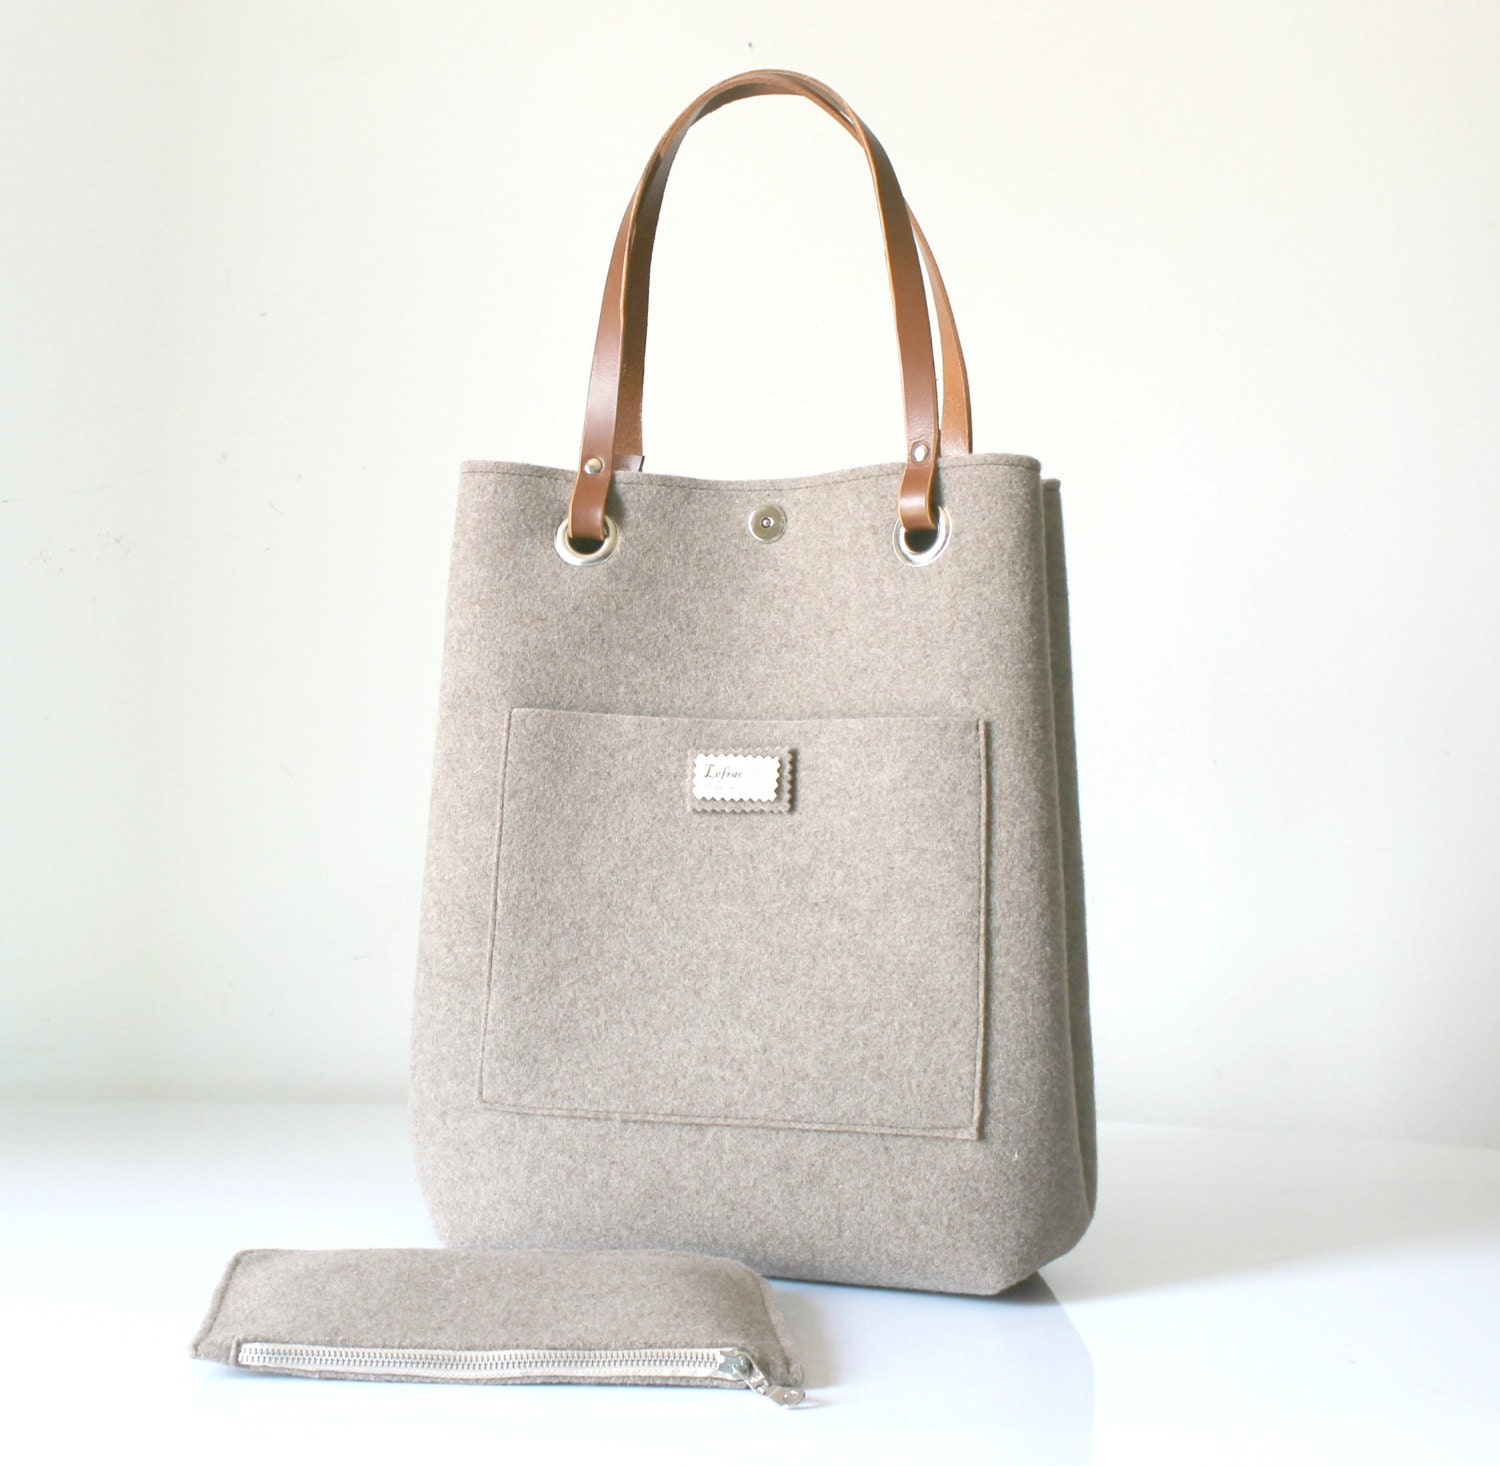 Leather Tote Felt tote bag Leather Bag Large tote Everyday